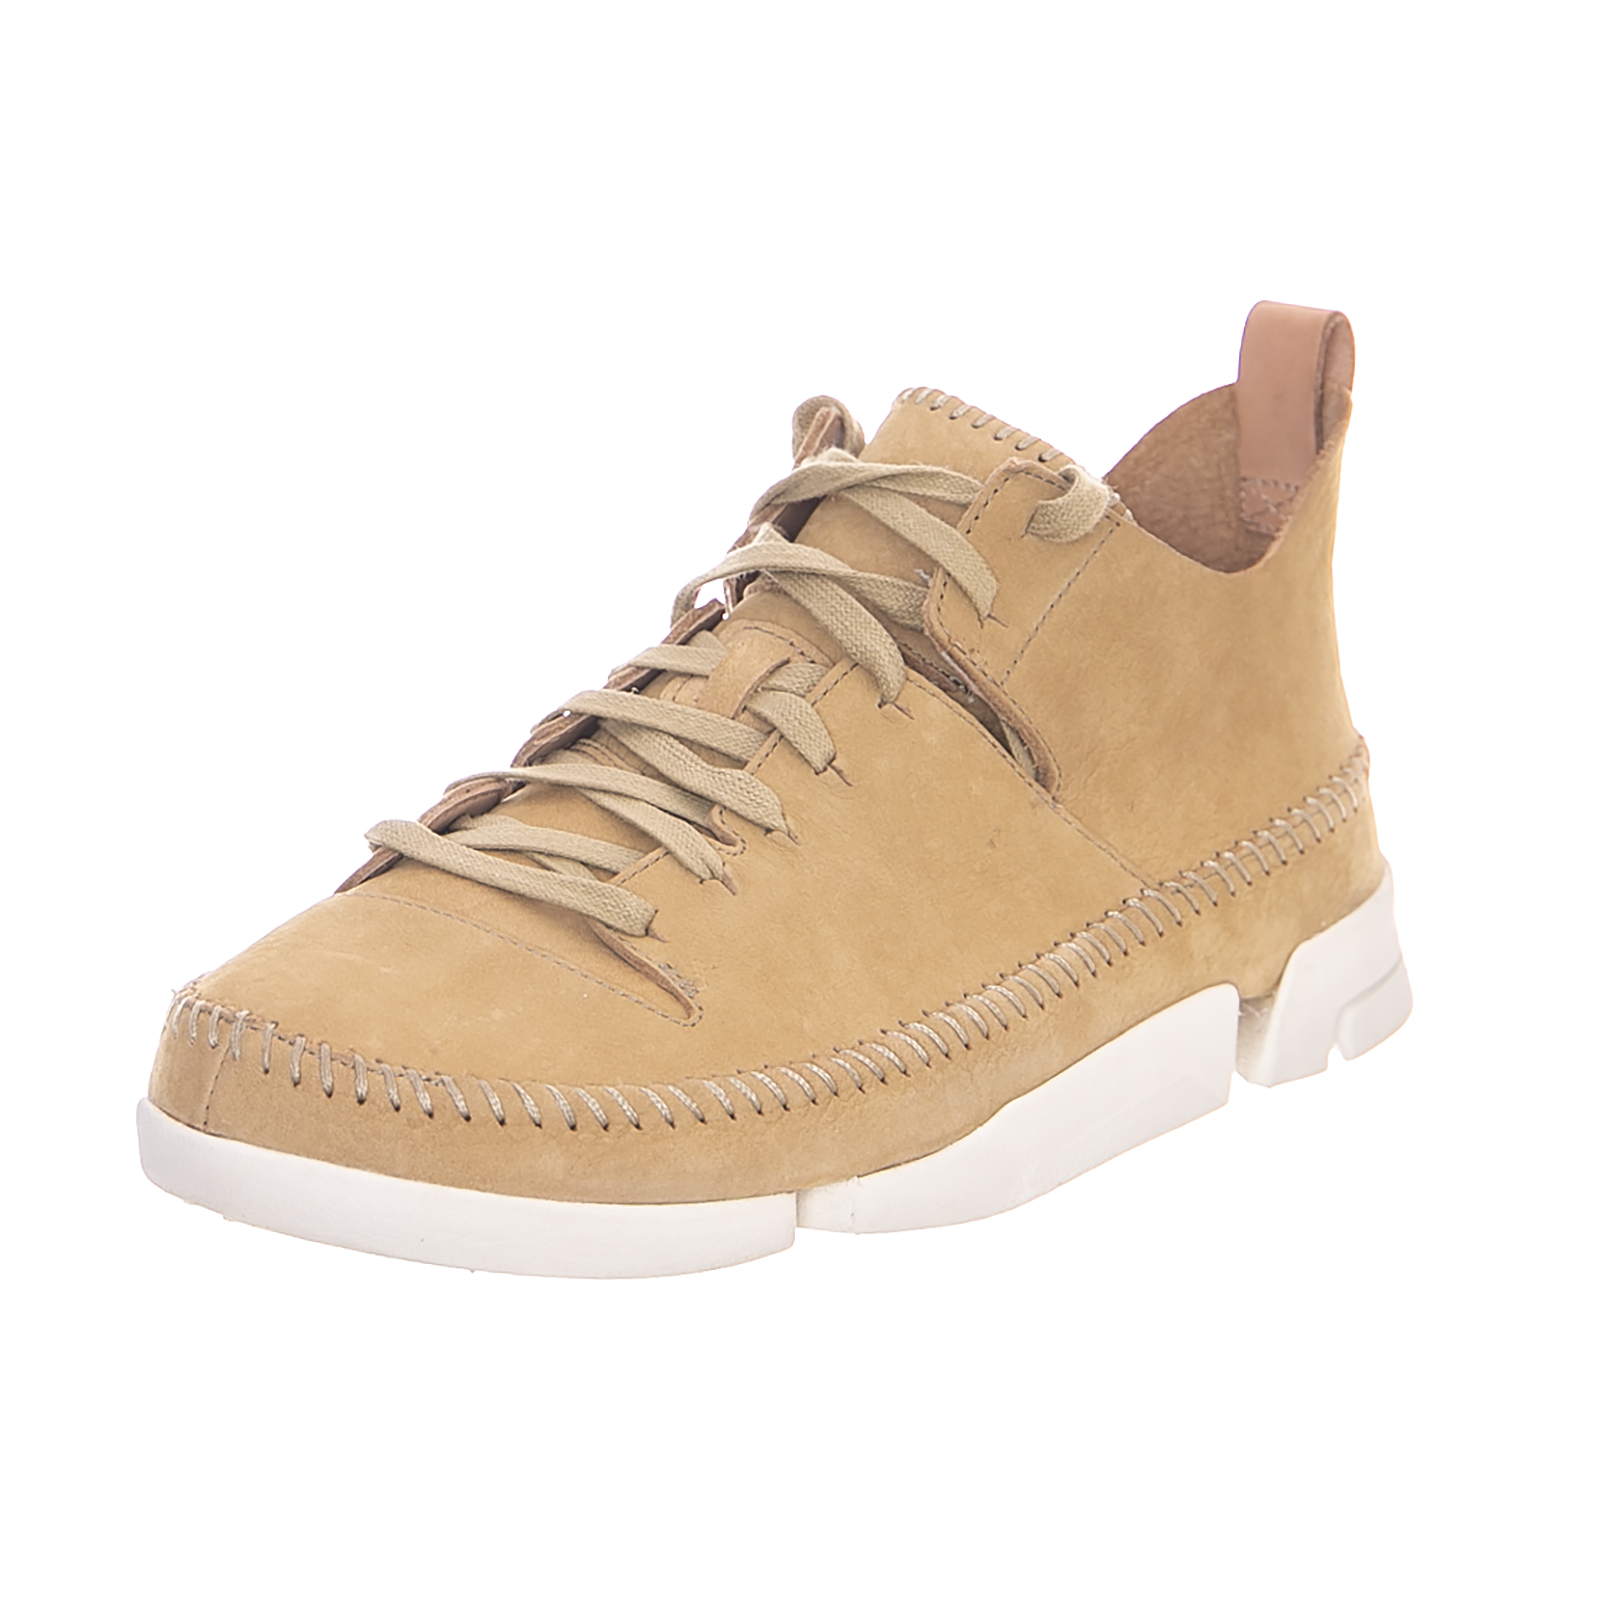 Clarks Turnchaussures Trigenic Flex Maple Beige